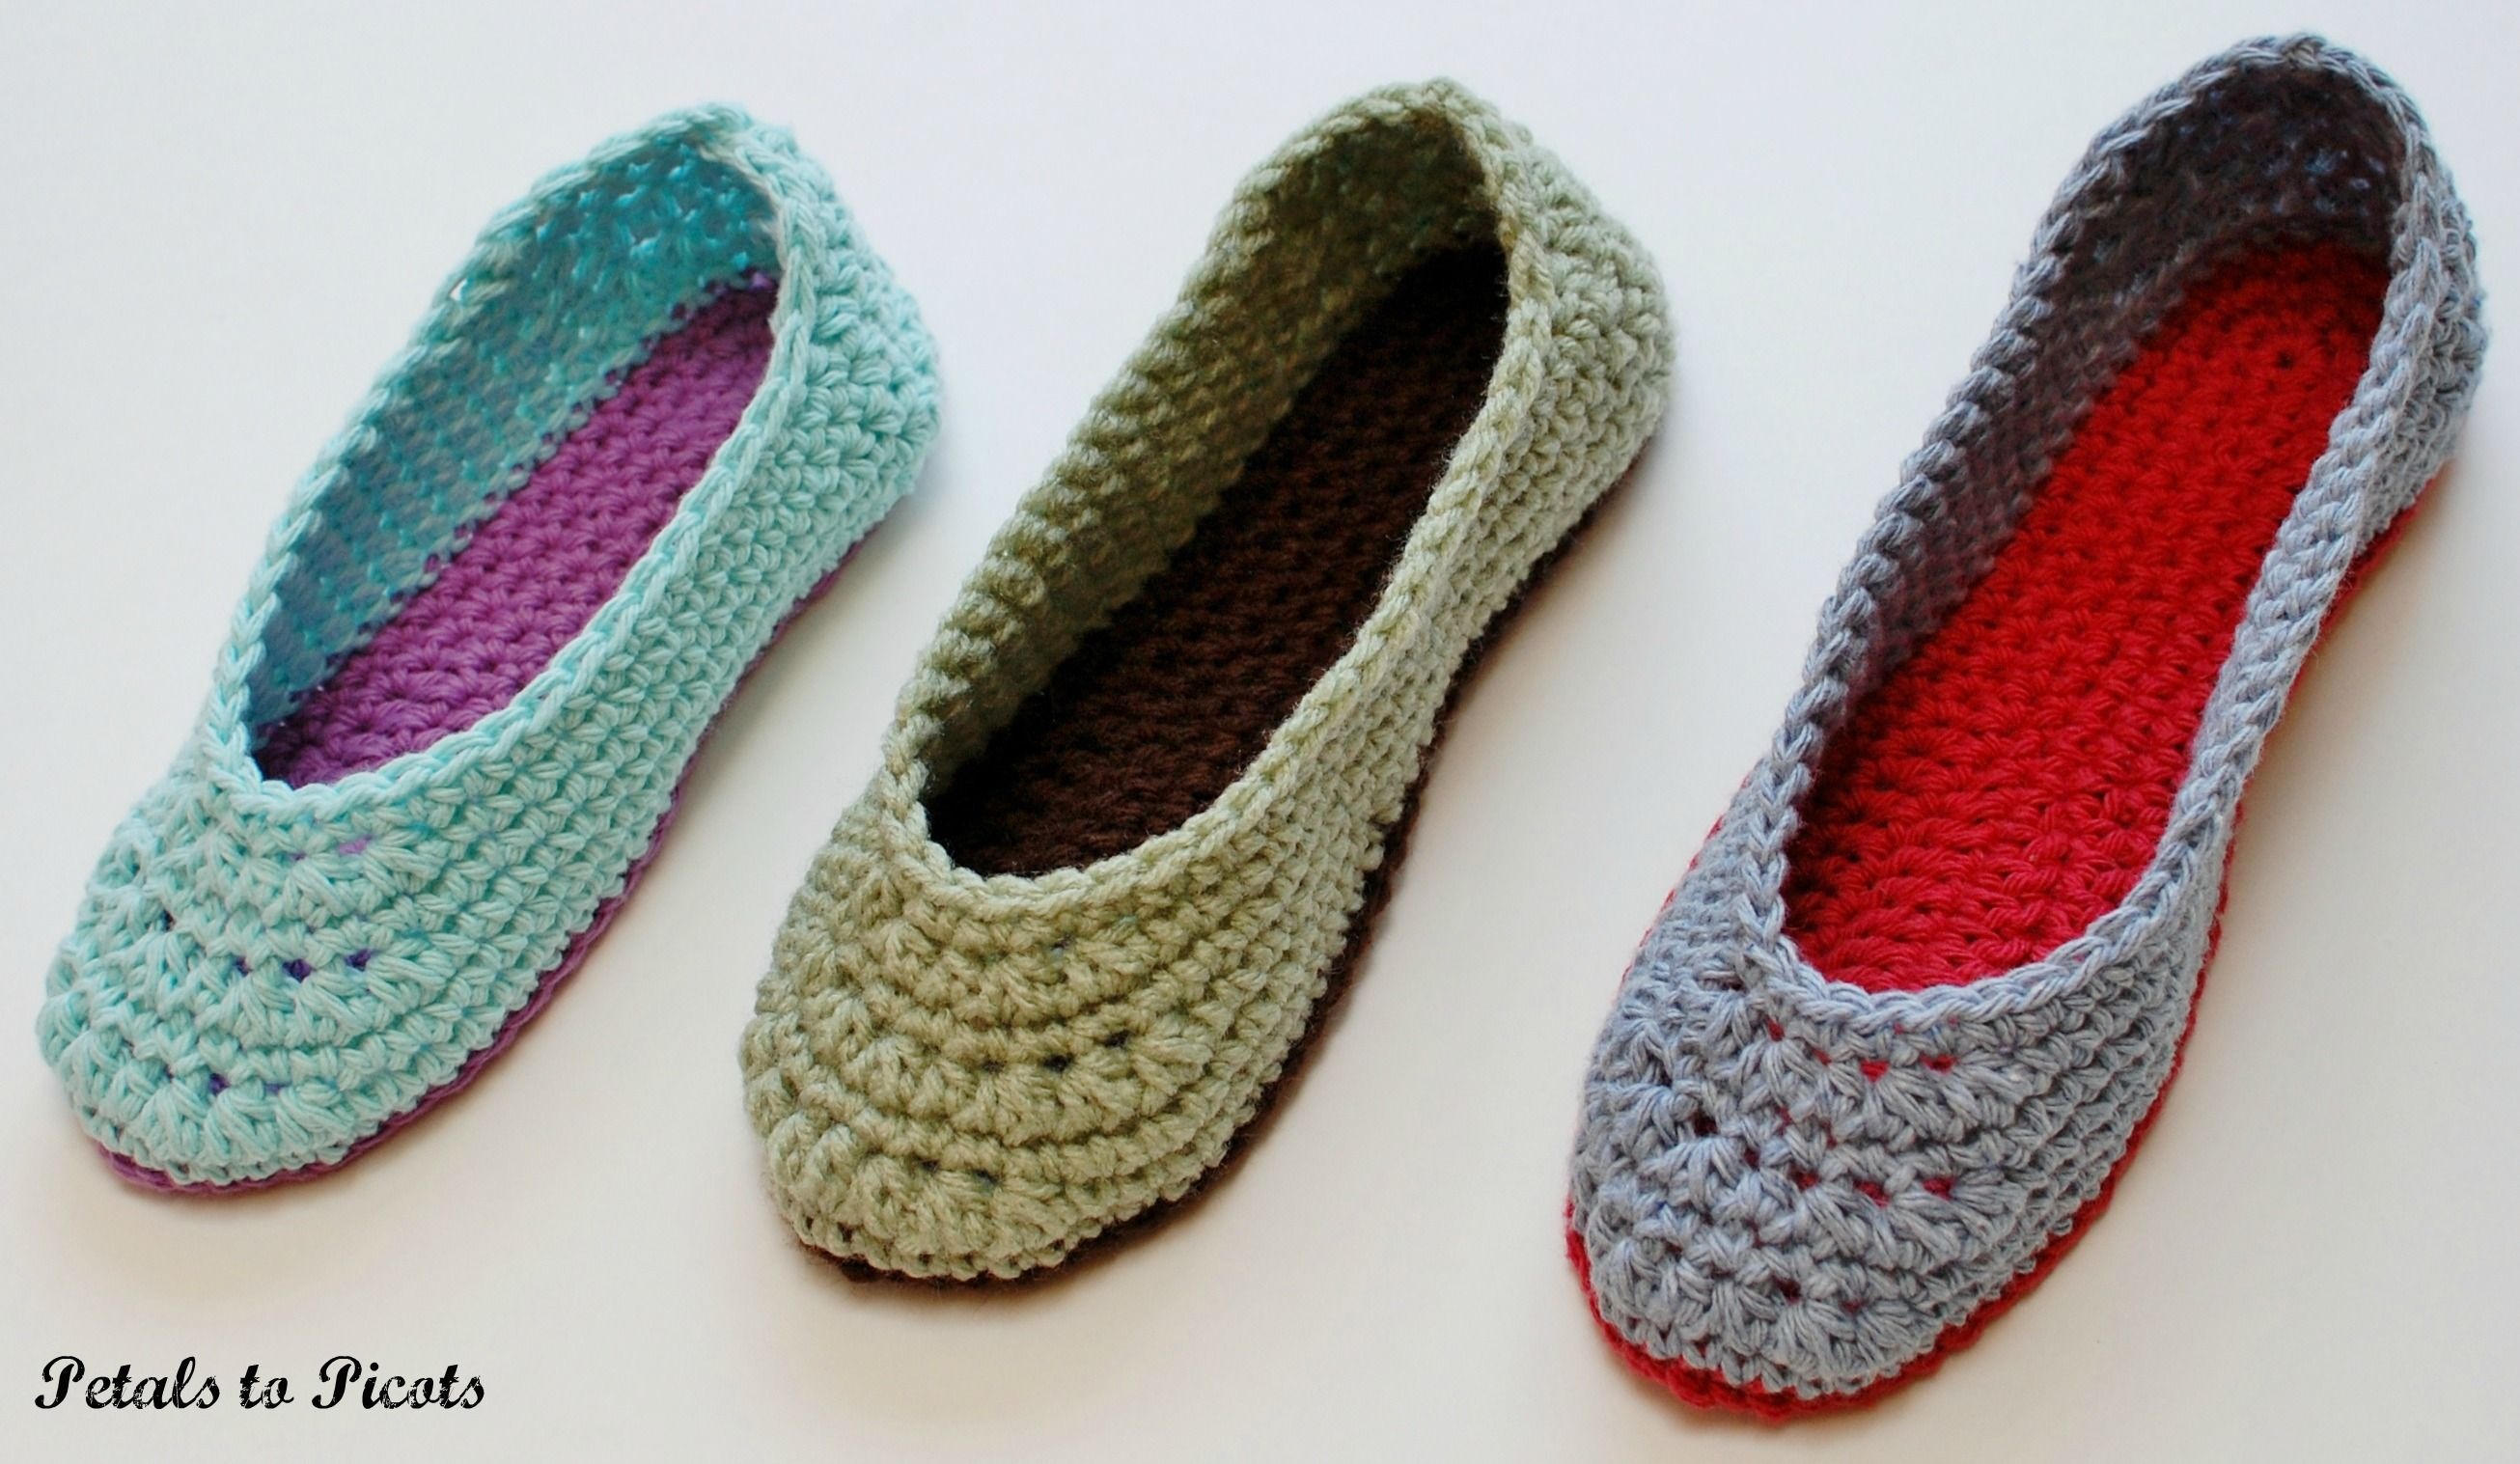 6371c796c16c0 Crochet Pattern - Ladies Slippers (Women's Sizes 4/5, 6/7, 8/9, 10 ...